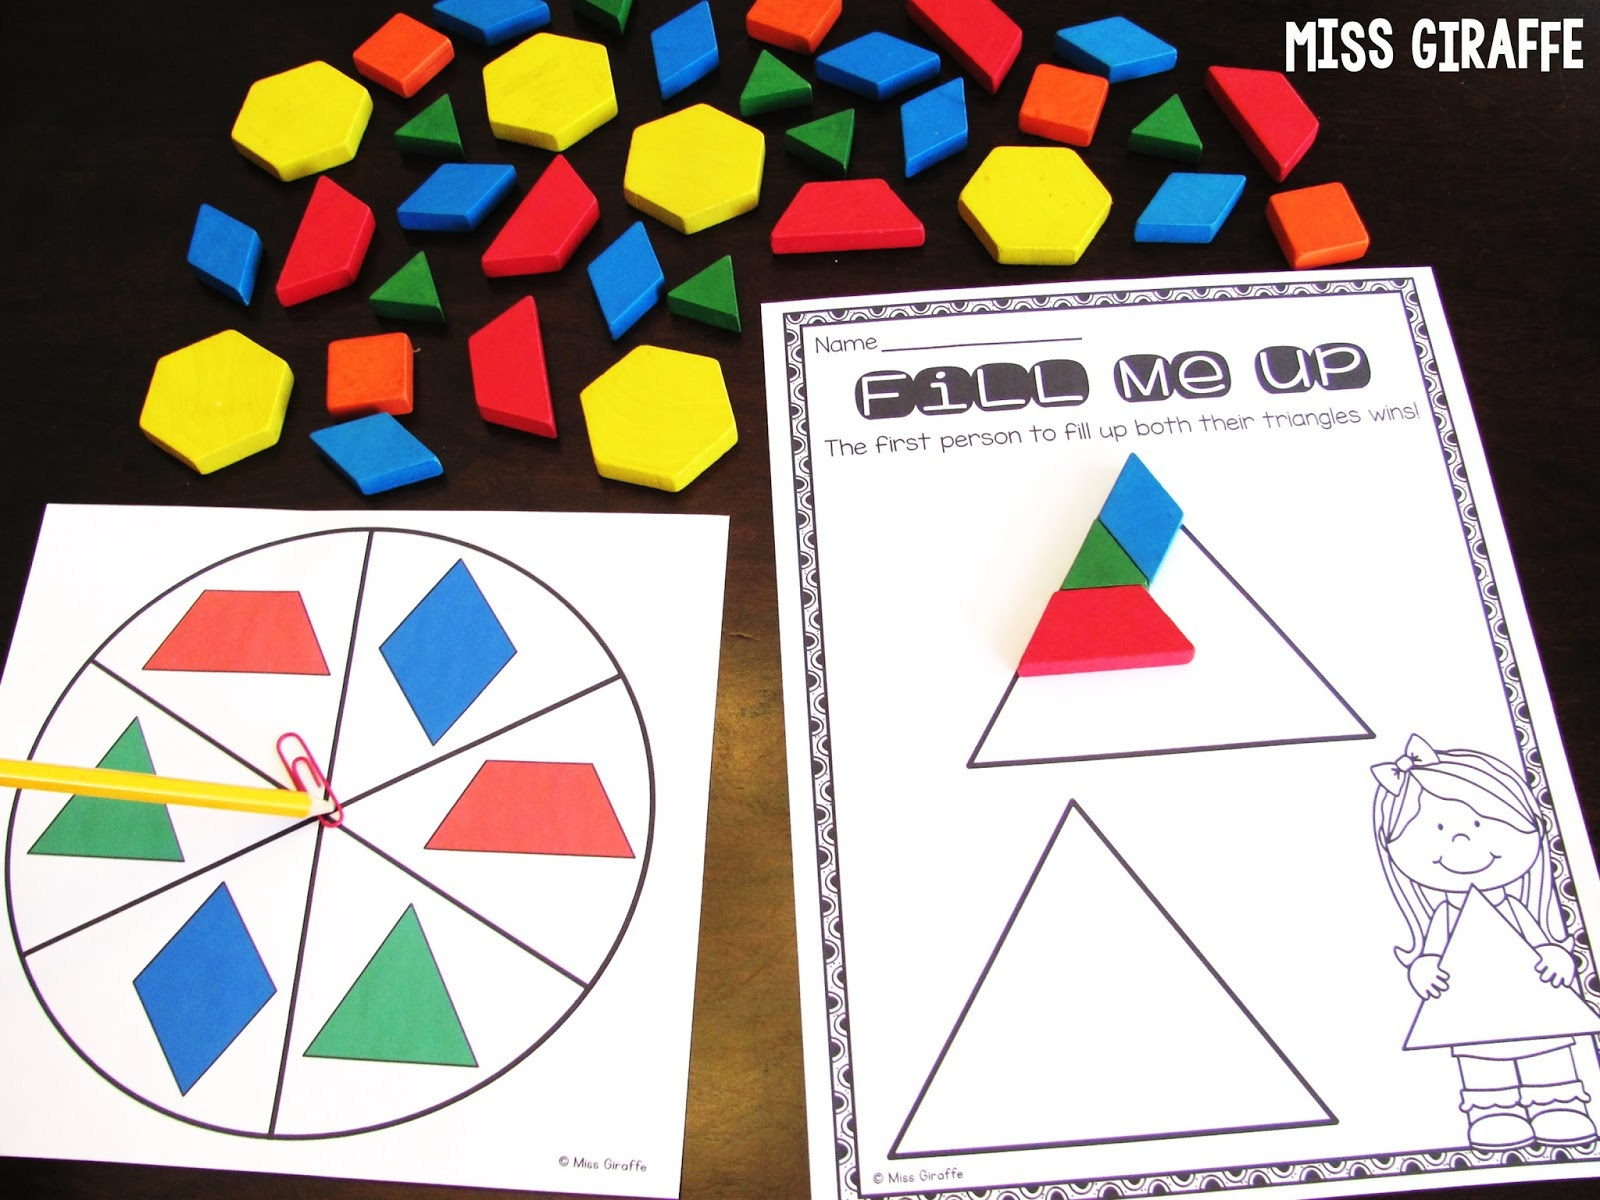 medium resolution of Miss Giraffe's Class: Composing Shapes in 1st Grade